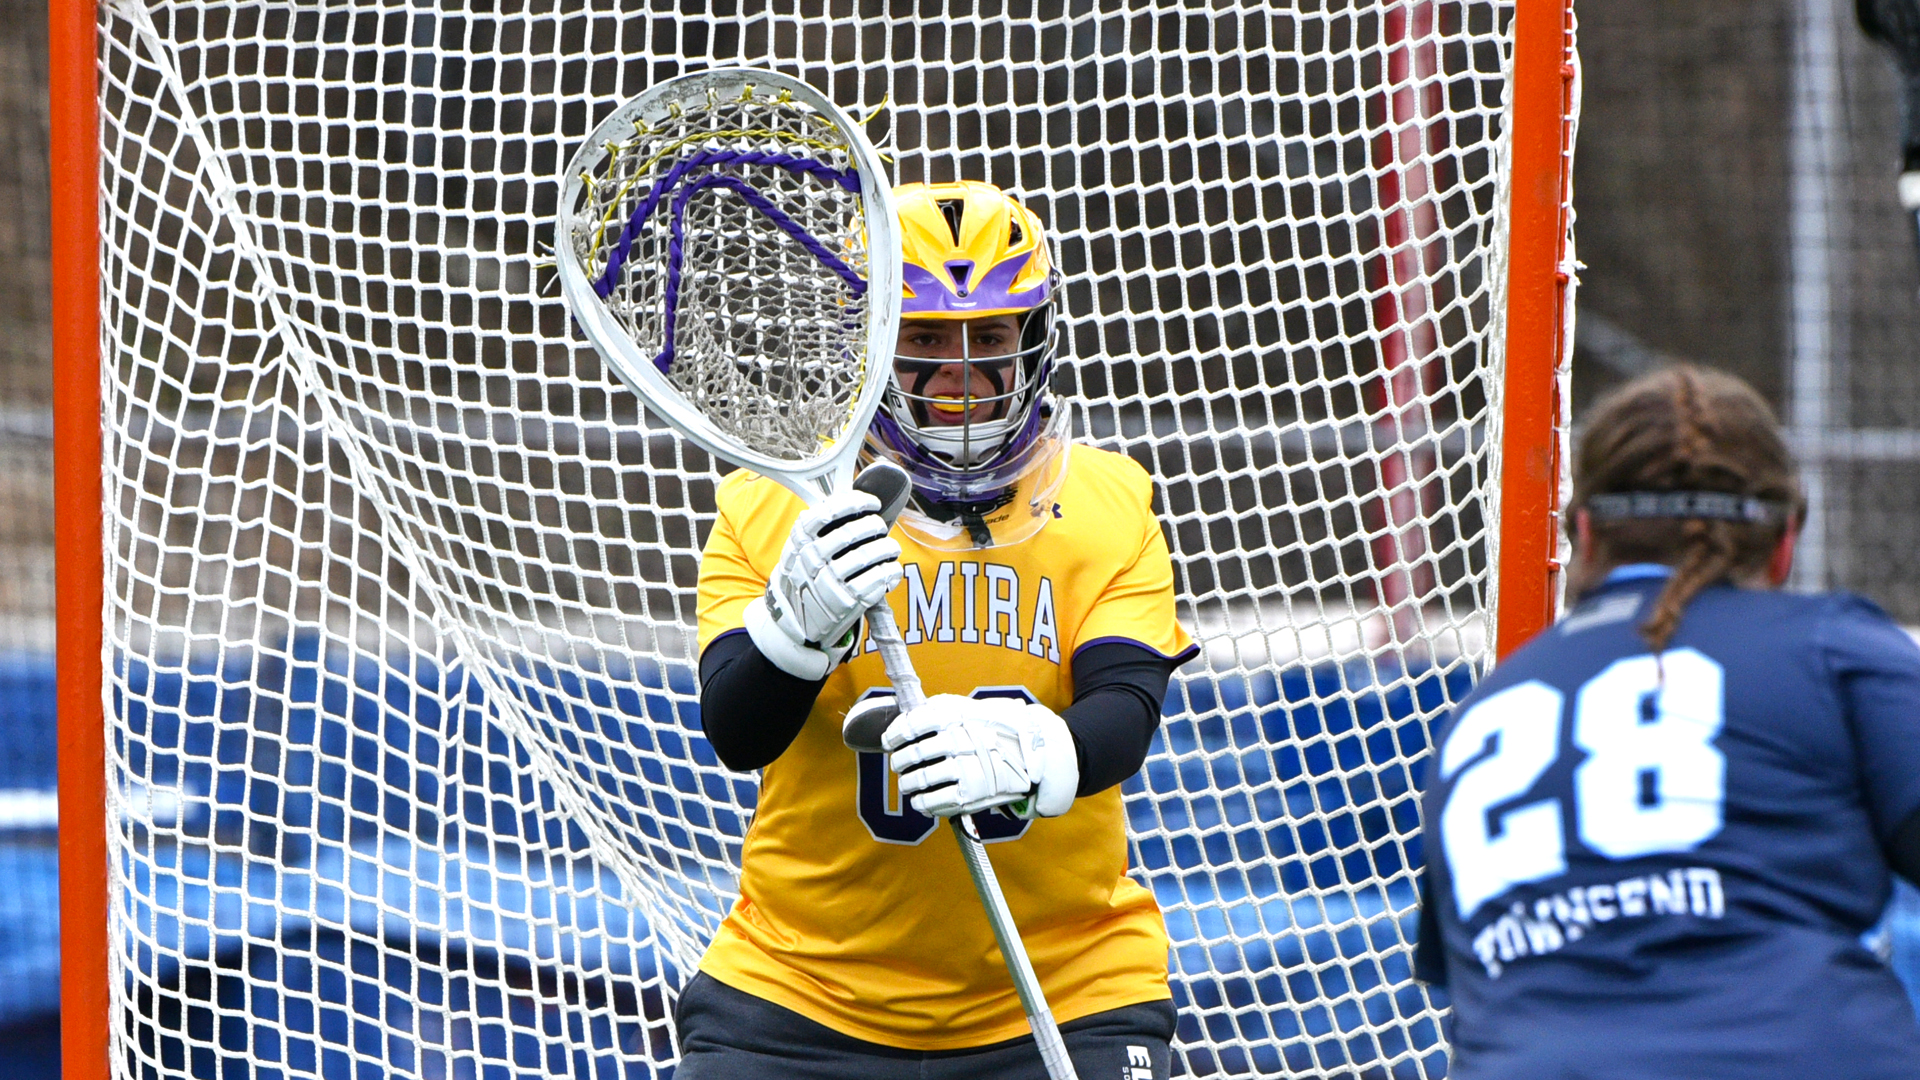 Women's Lacrosse Tripped Up by D'Youville - Elmira College Athletics